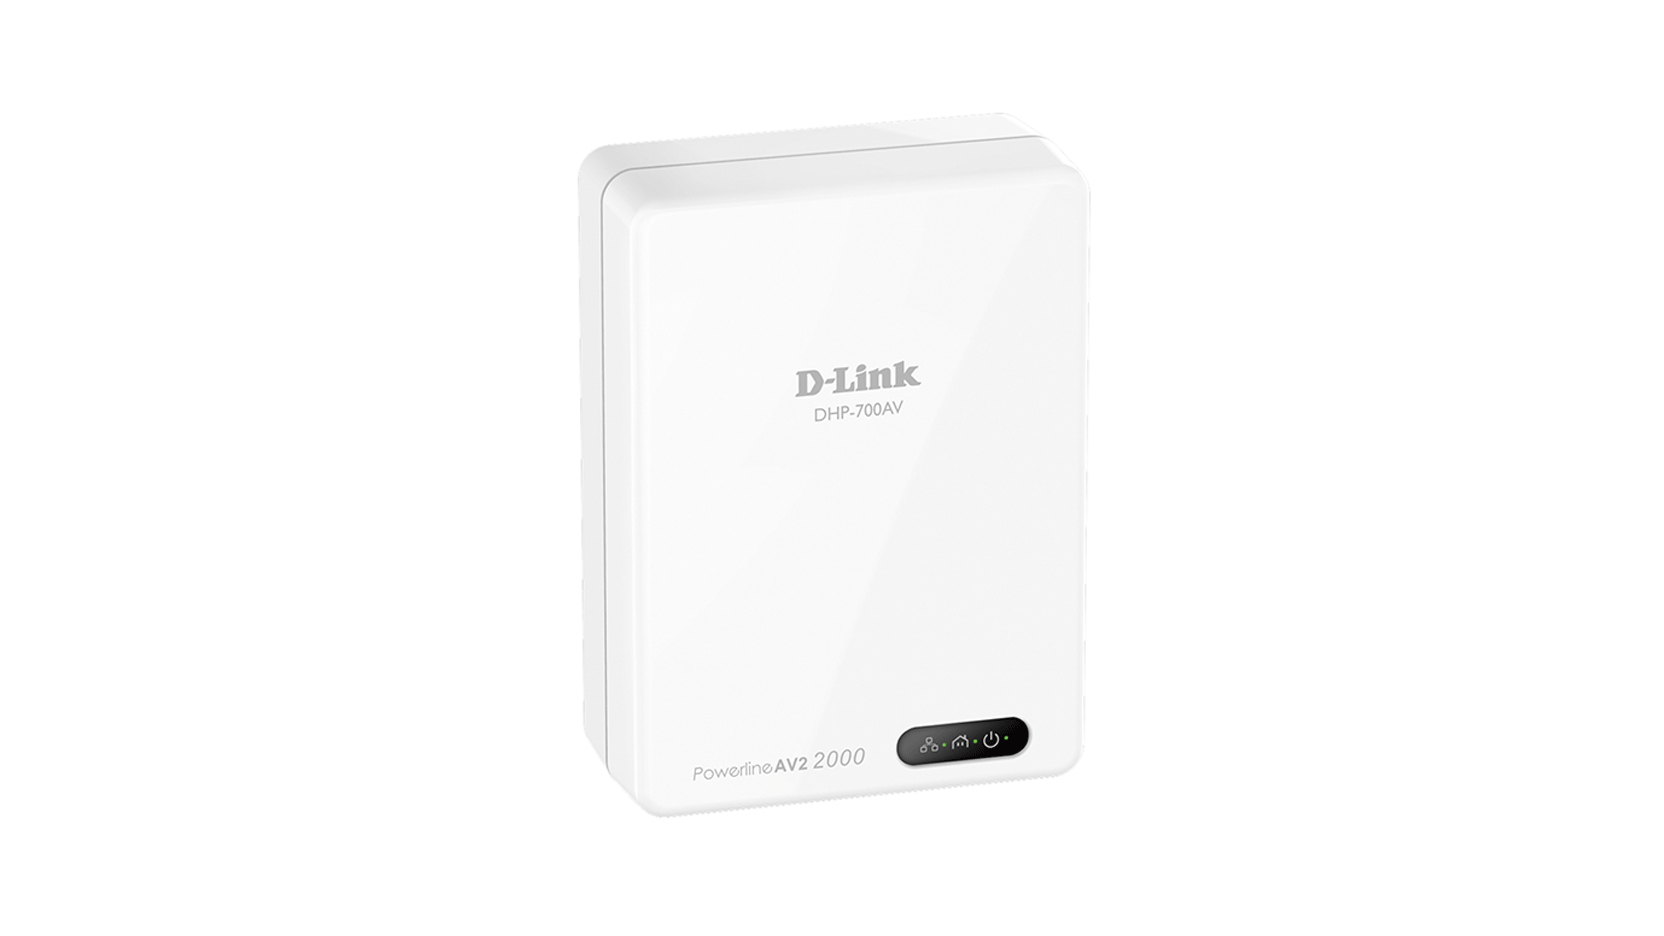 D Link Powerline Av2000 Gigabit Network Extender Kit With Homeplugs Using Just Your Existing Electrical Wiring